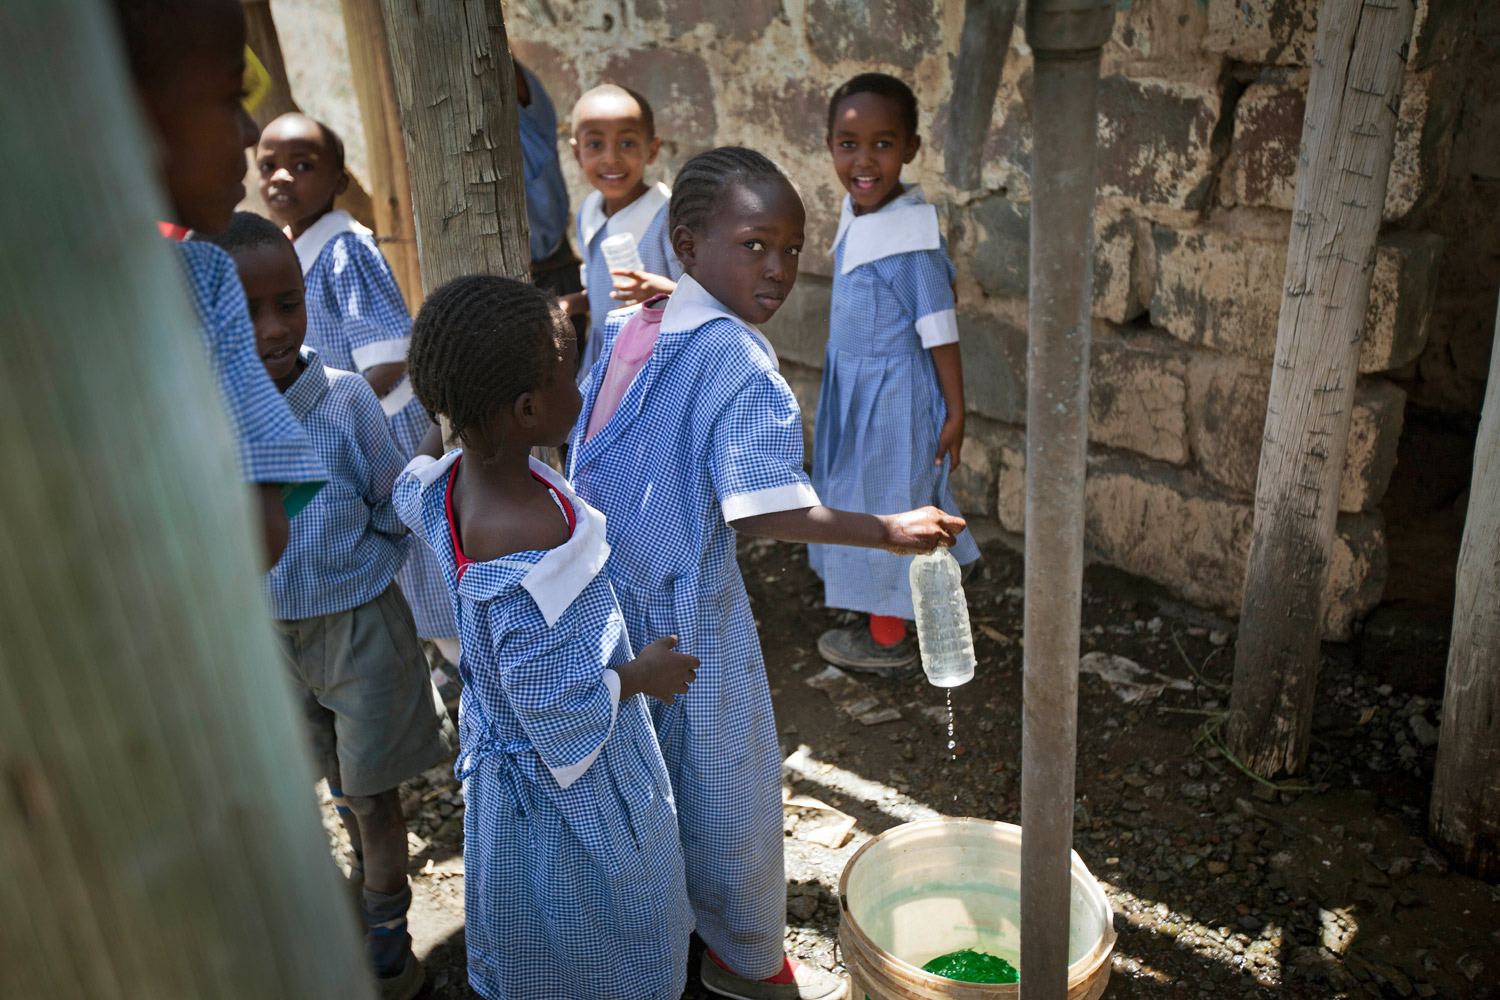 February 2, 2012. Schoolgirls fill a bottle of water from a tank supplied by a borehole at their school in the Karagita slum next to Lake Naivasha, during a visit by Rachel Kyte, Vice President of Sustainable Development for the World Bank, unseen, in Kenya.